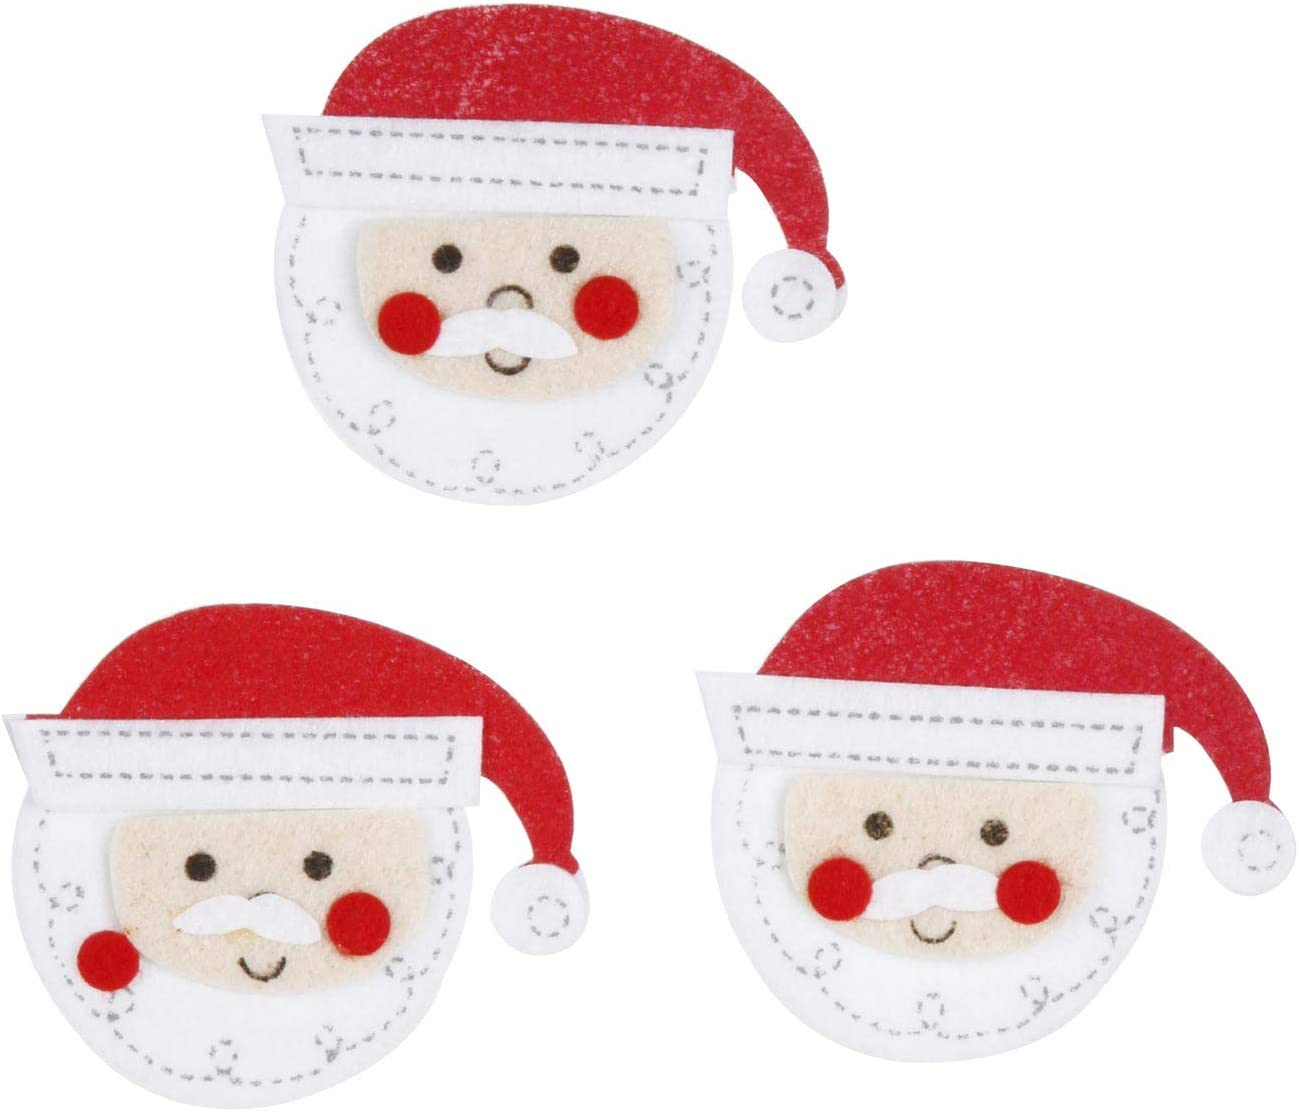 Gingerbread Boy//Man and Girl Bundle of 32 Stickers for Kids Holiday Felt Stickers for Kids Santa Face 10 Santa Claus 22 Gingerbread